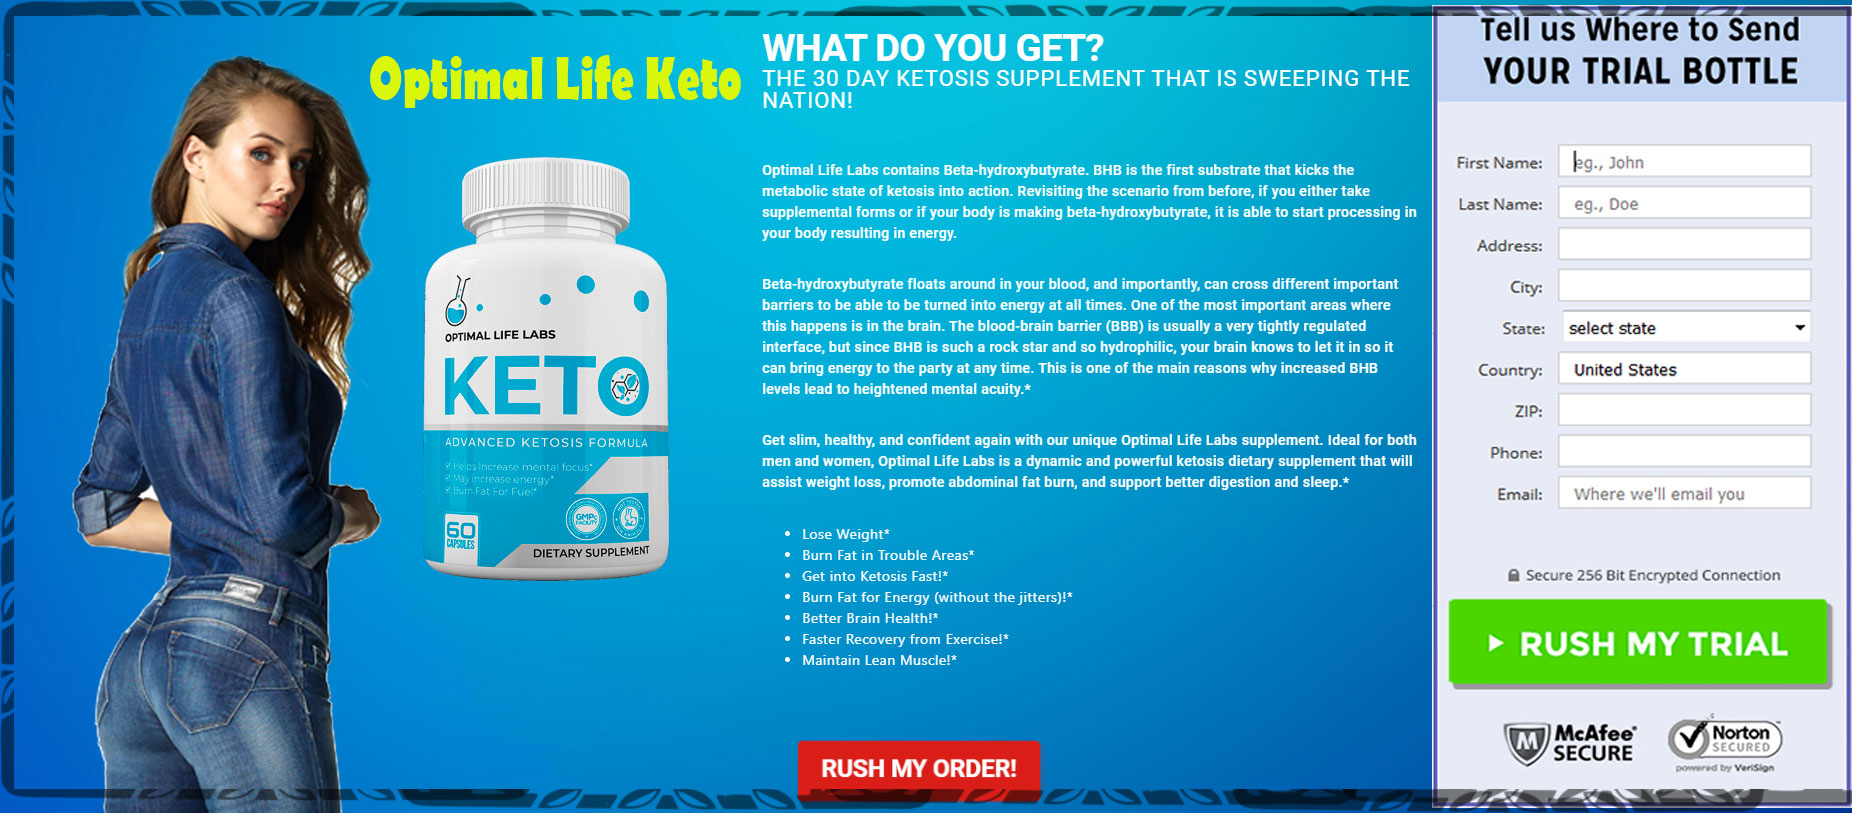 get-jgj122-Optimal-Life-Keto1